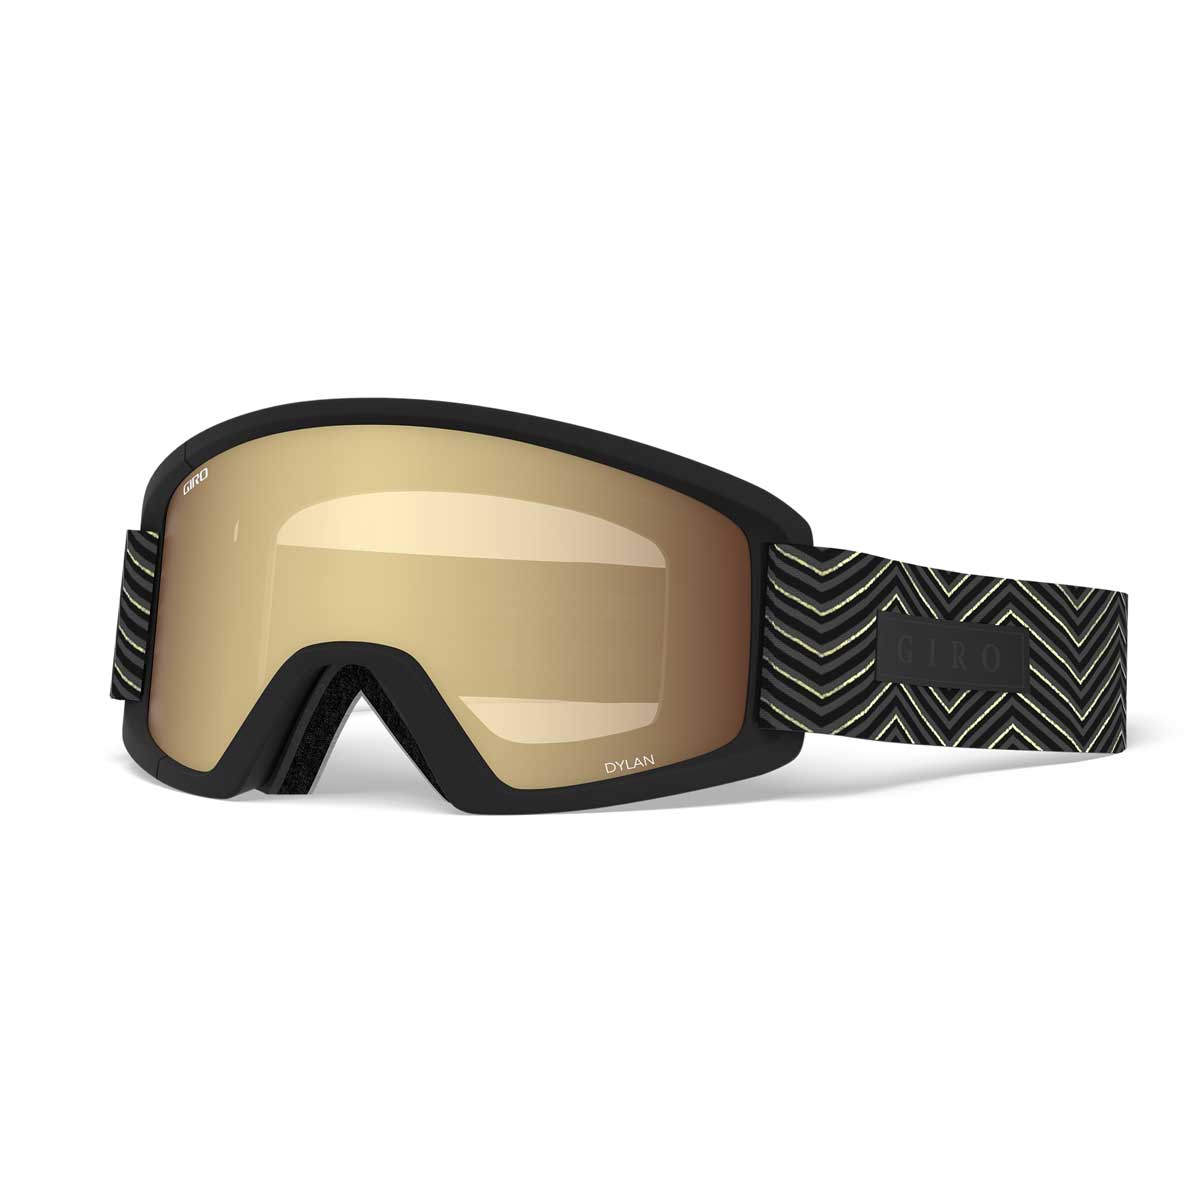 Giro Dylan goggle in Black Zag with Amber Gold